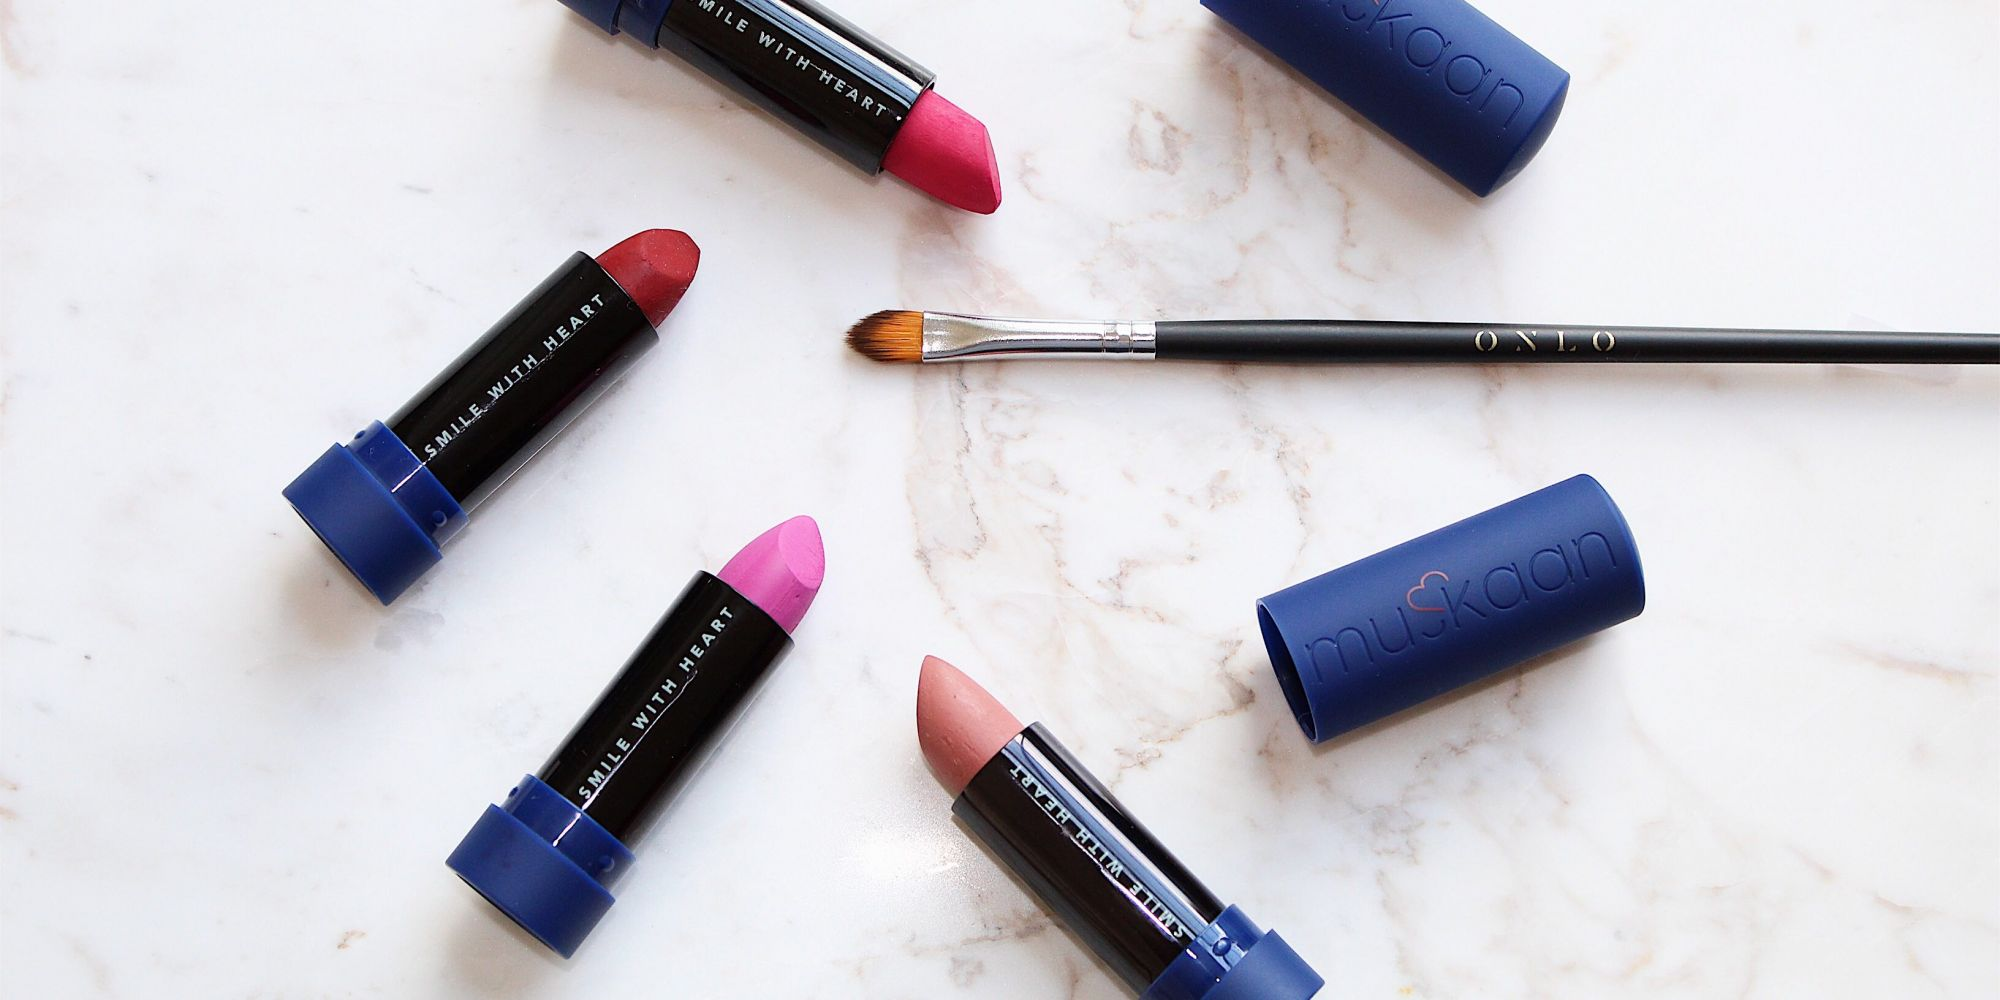 Vegan, Cruelty-Free And Halal-Certified New Brand Muskaan Takes Its Seals Seriously And Lipsticks With A Smile